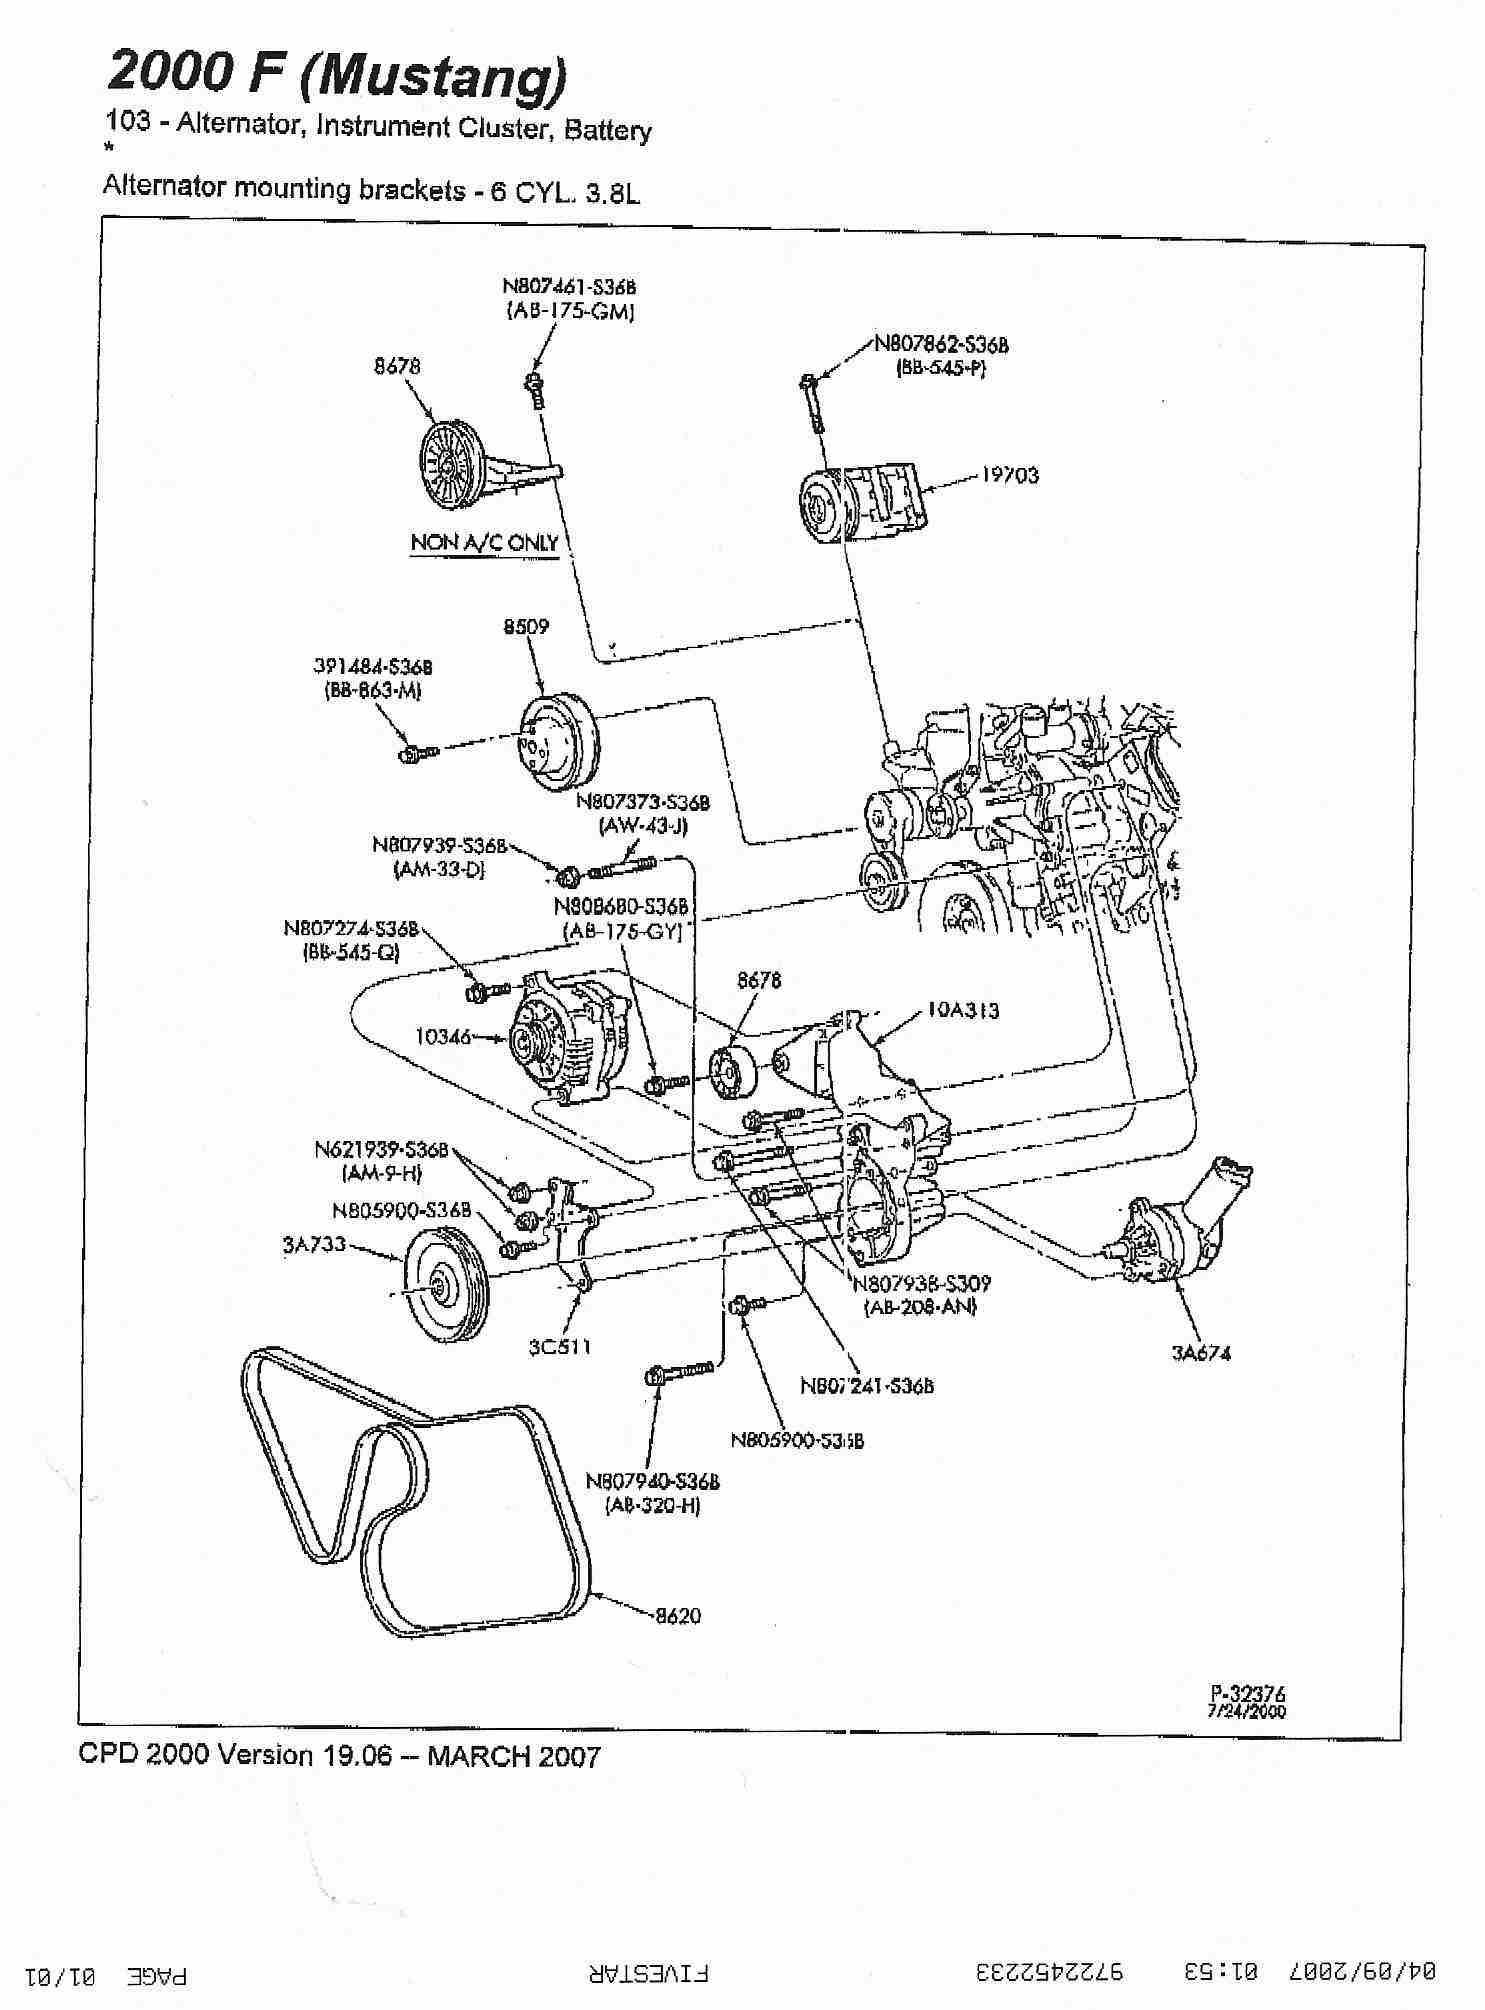 2007 mustang 4.0 fuse box diagram